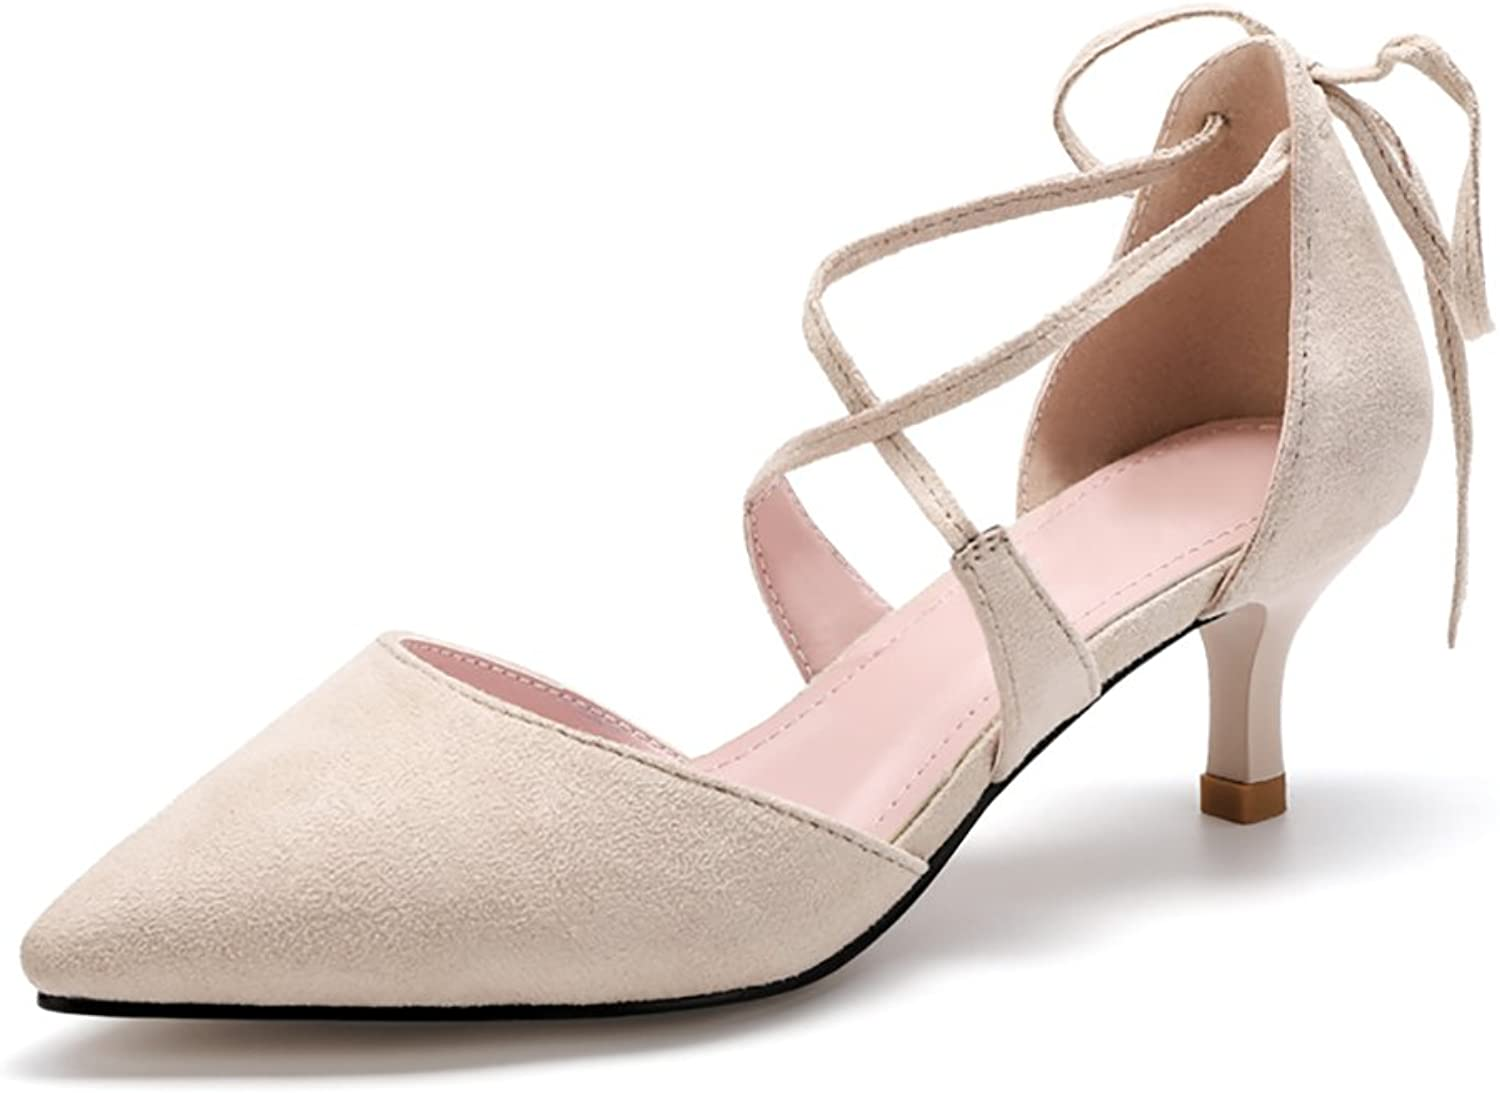 WENJUN Wild Shallow Pointed High Heels Female Students Baotou Fine with Fashion Wild shoes Professional shoes (color   Fine Heel - Apricot - 5.5cm, Size   39)